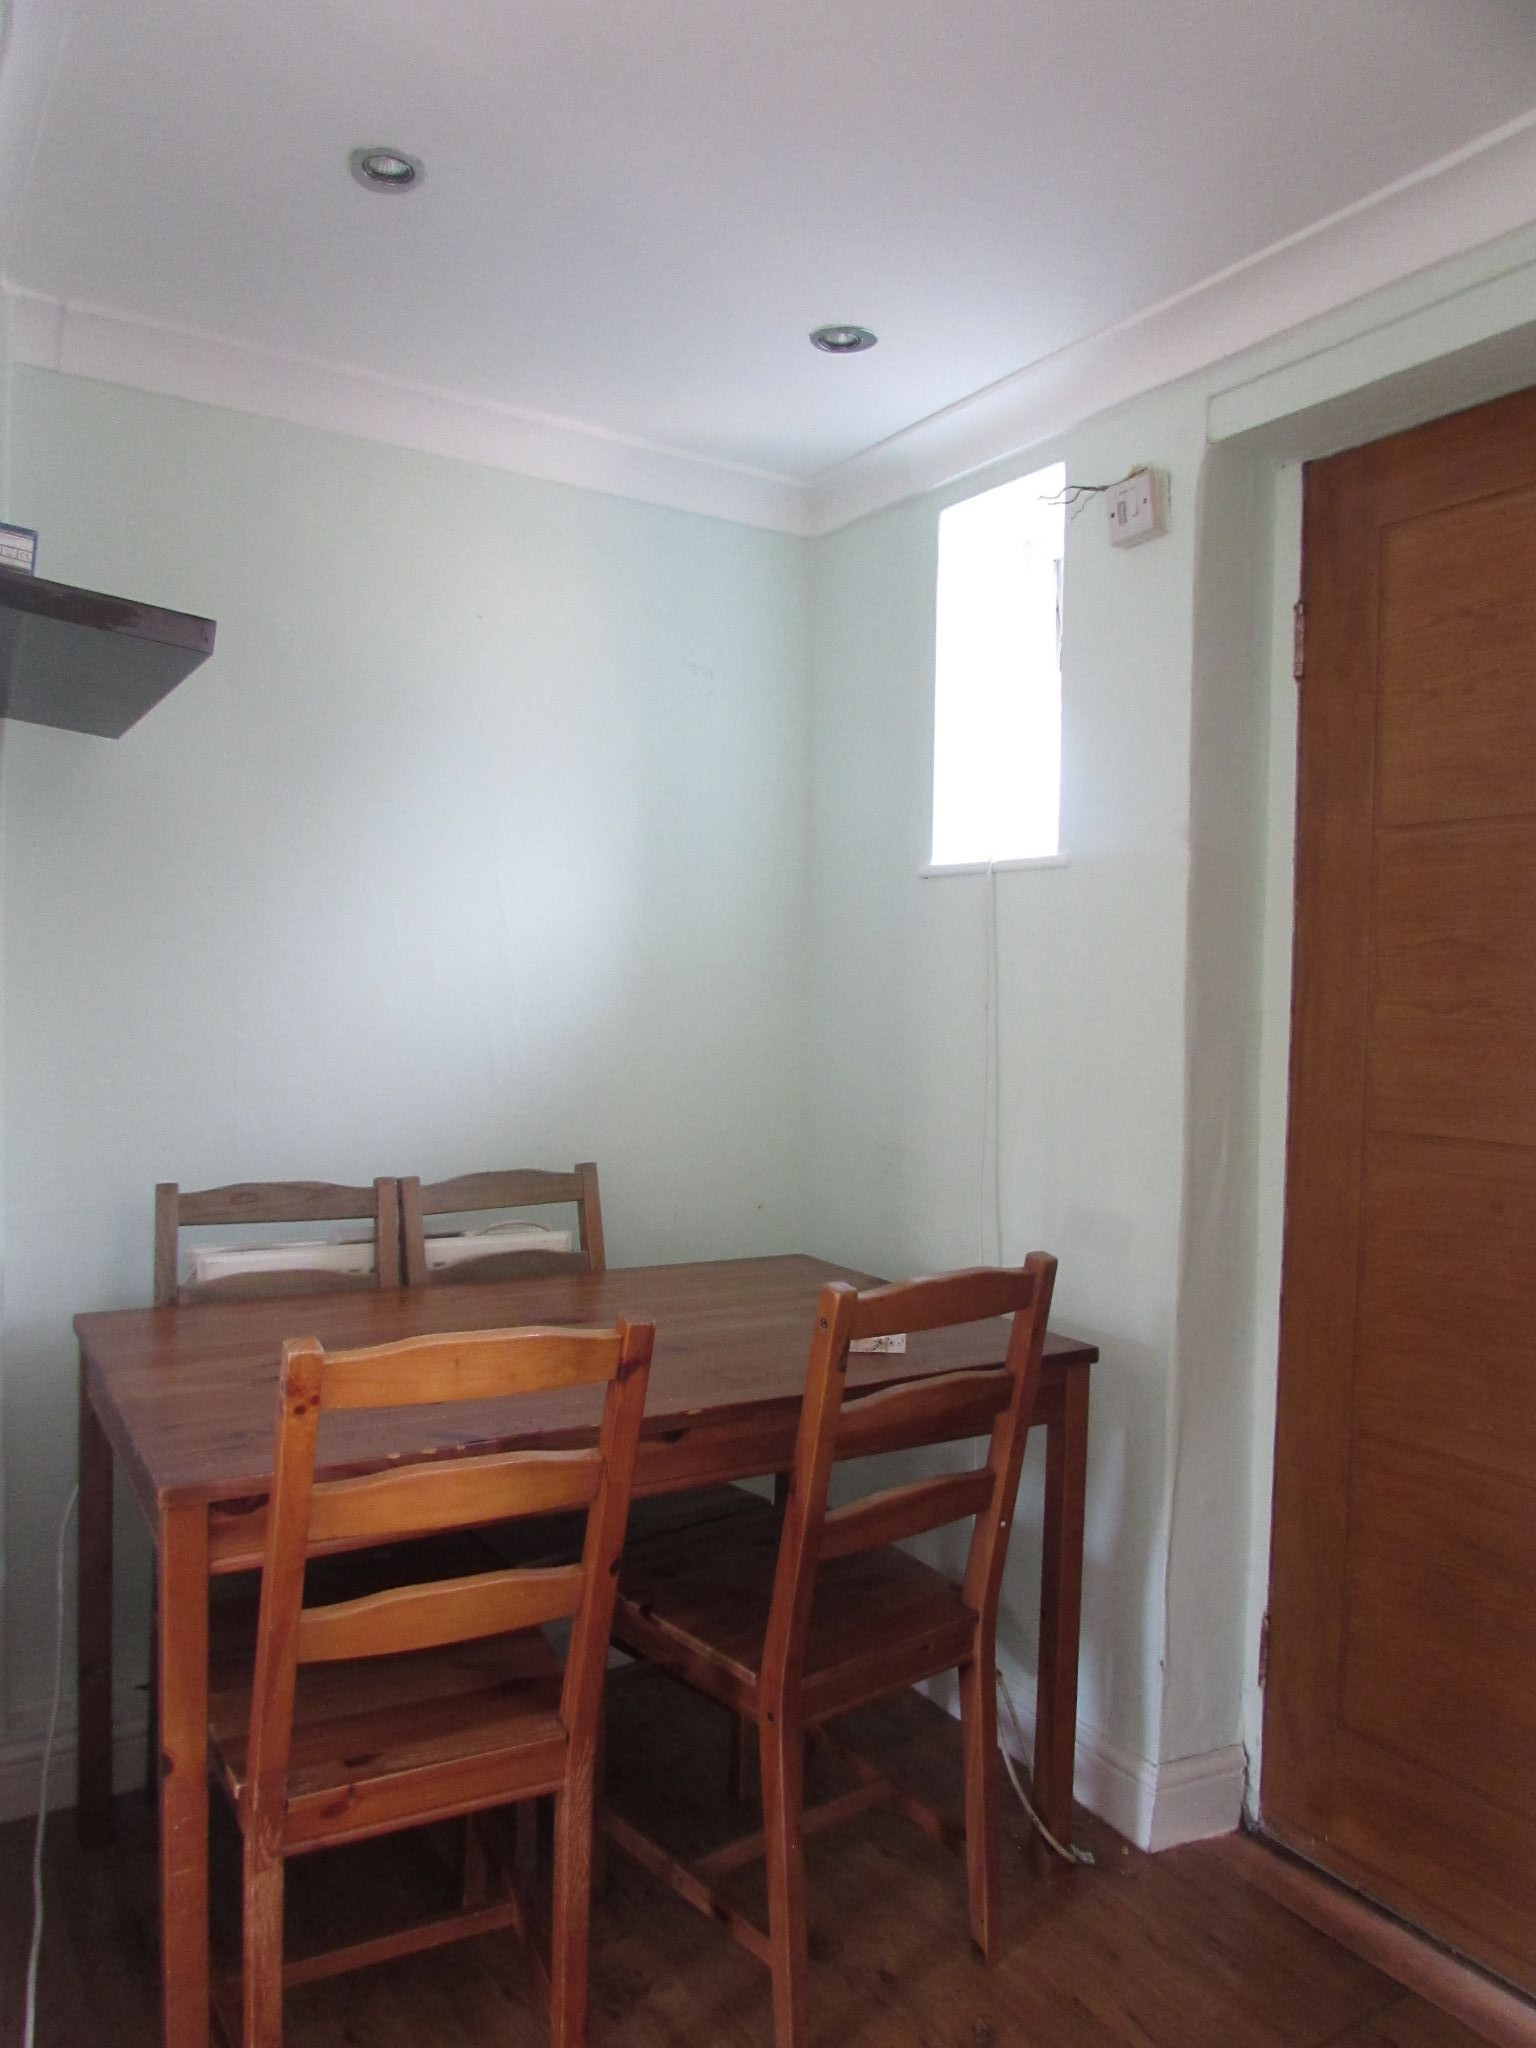 3 Bedroom Semi-detached House For Sale - Dining Area